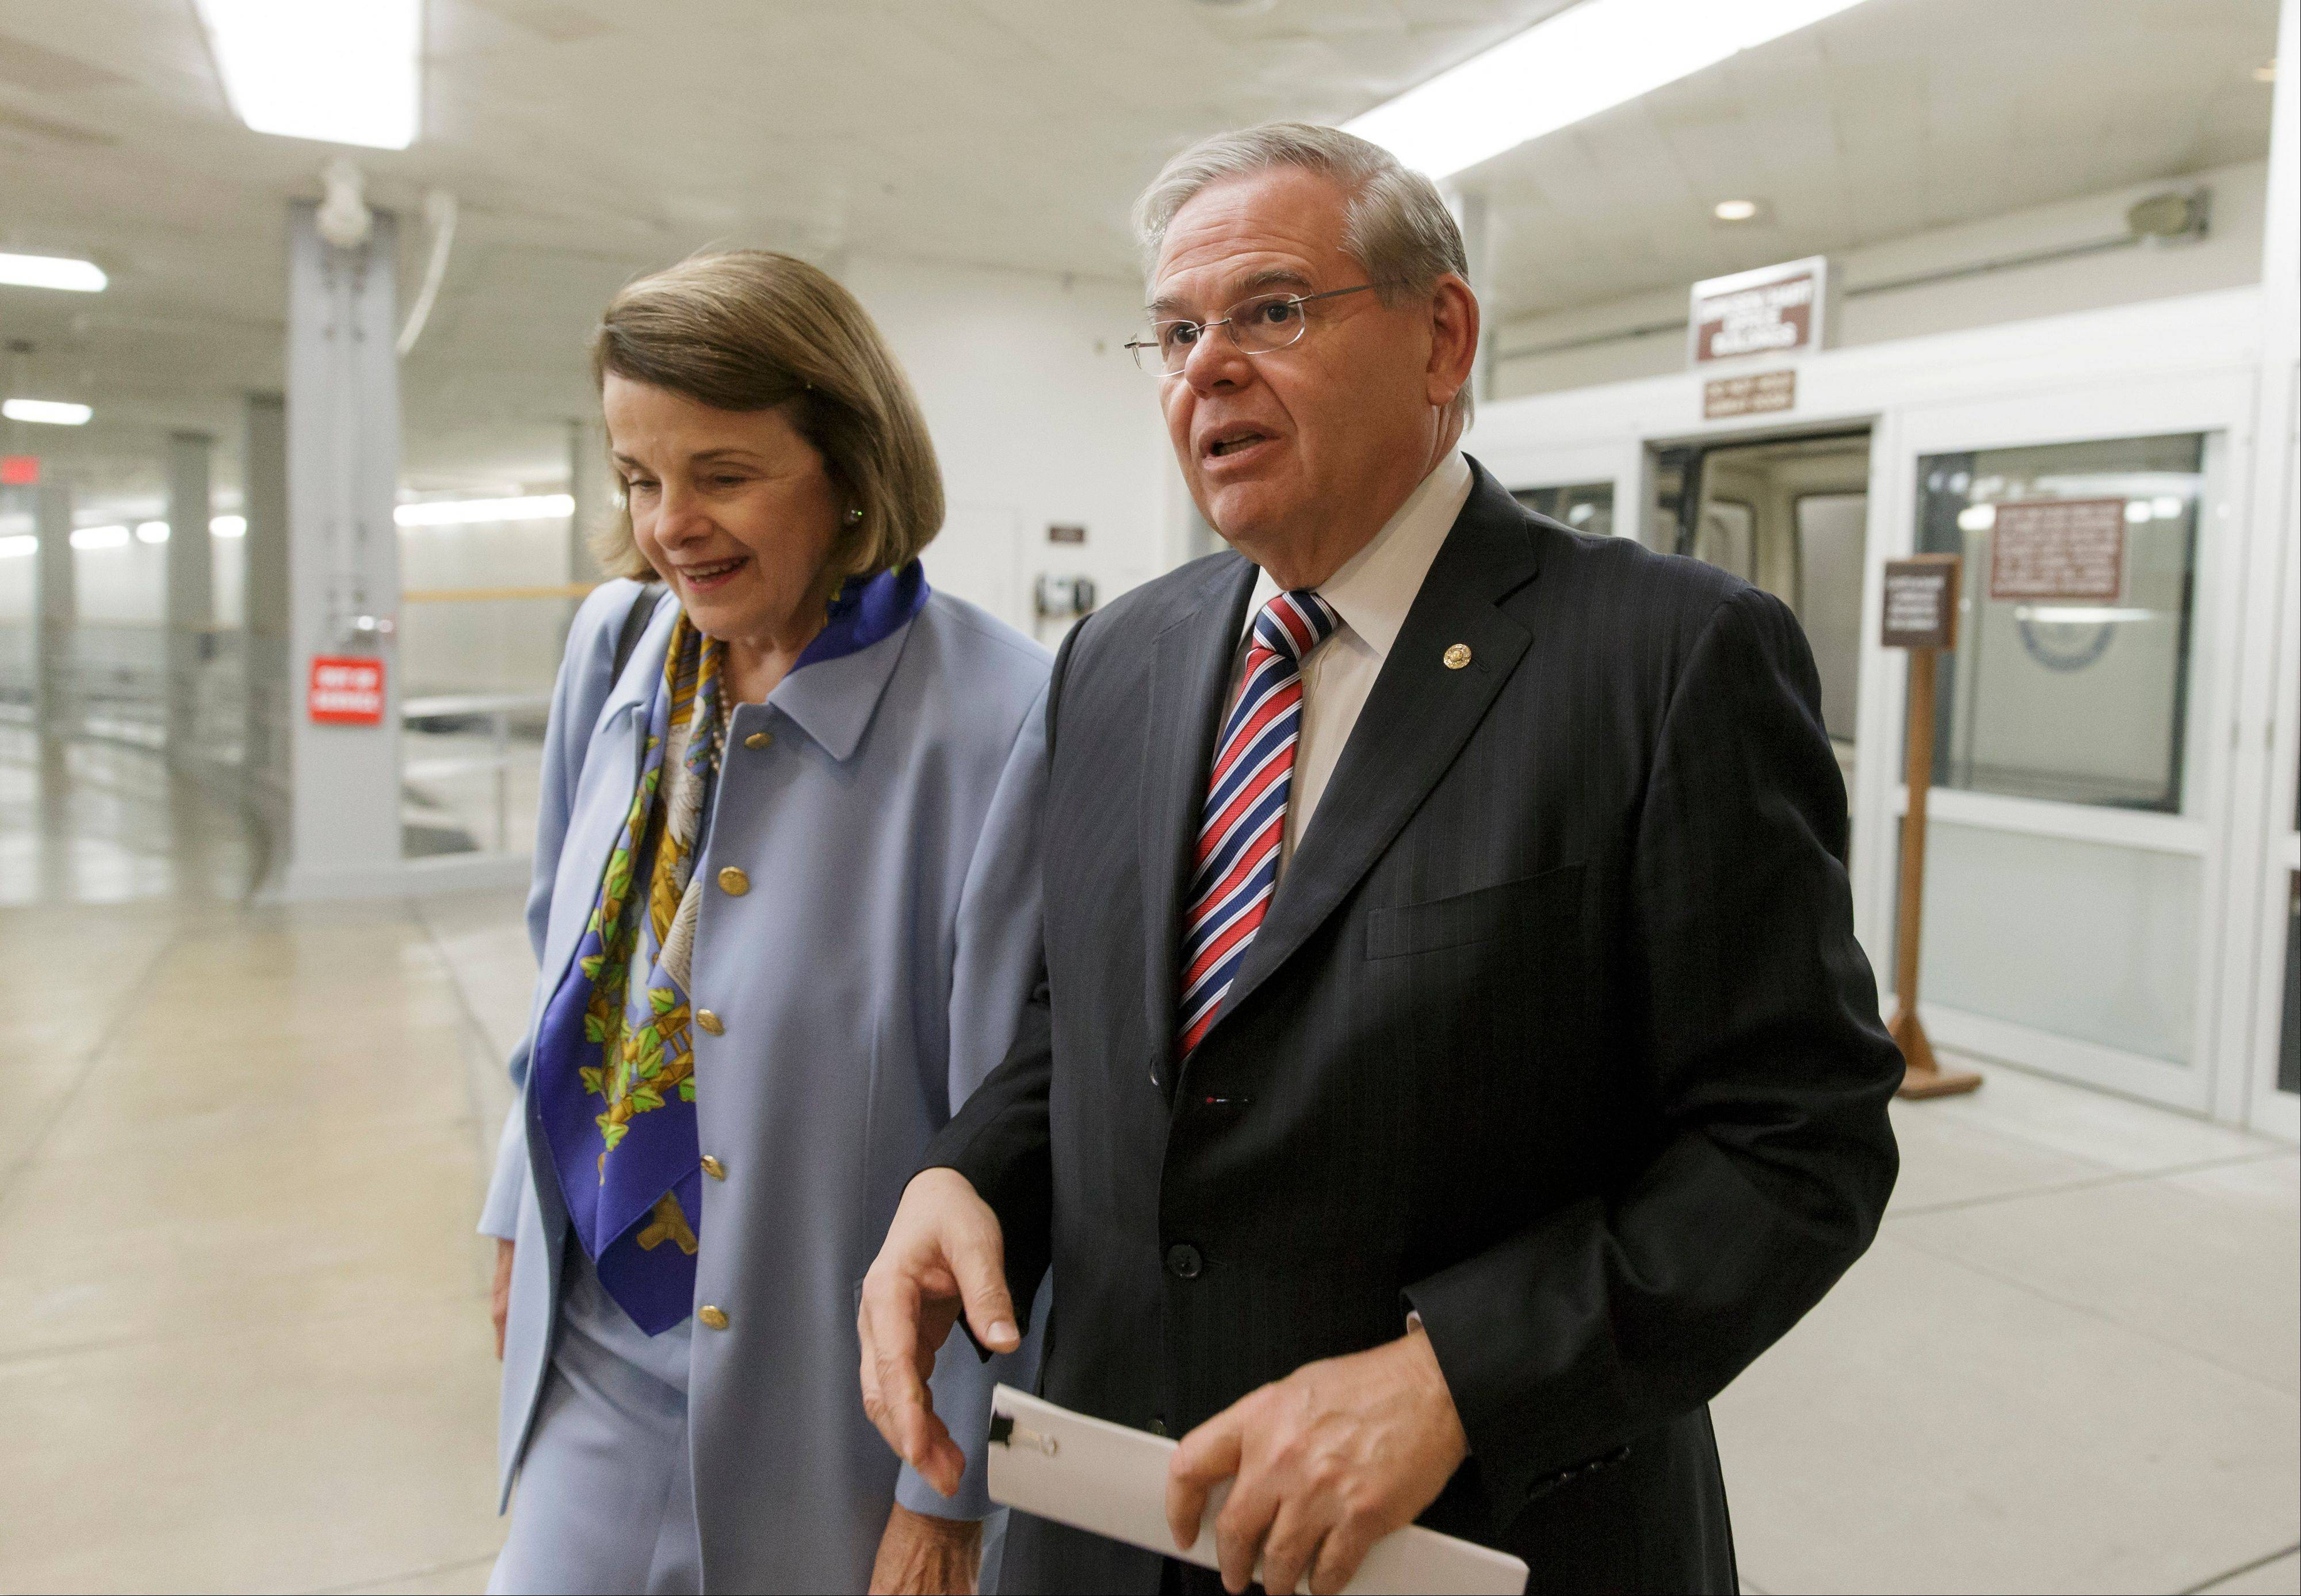 Sen. Dianne Feinstein, a California Democrat and chair of the Senate Intelligence Committee, left, and Senate Foreign Relations Chairman Robert Menendez, a New Jersey Democrat, right, walk together at the Capitol as lawmakers return from holiday recess on their way to scheduled votes, in Washington Monday.